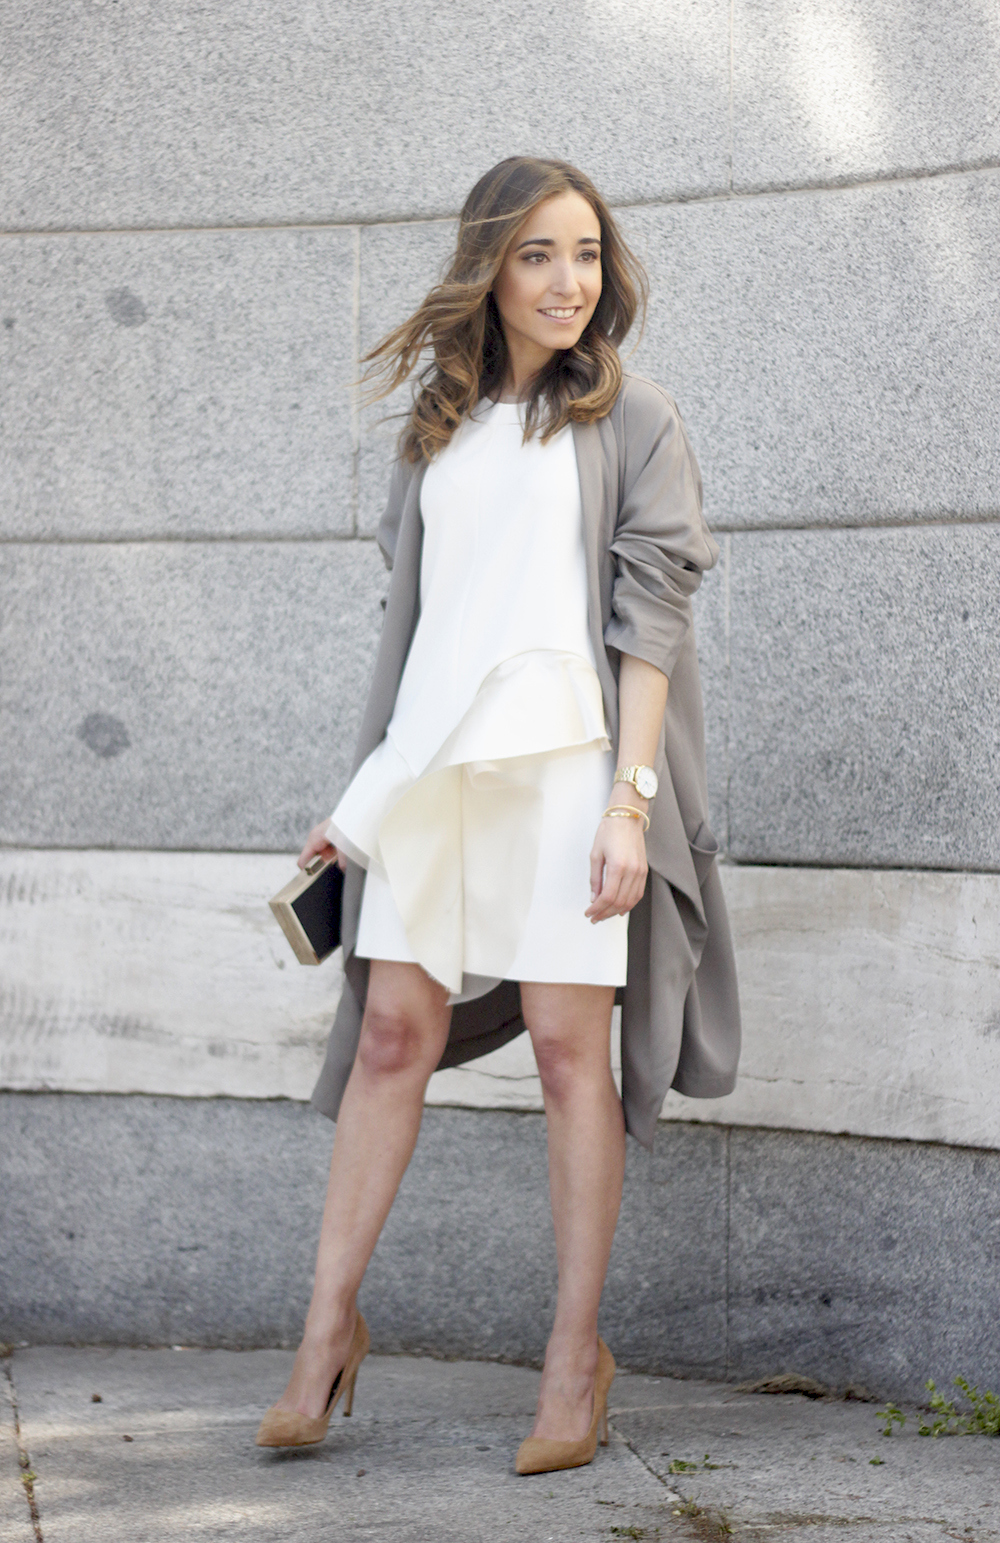 White dress with ruffles trench nude heels clutch accessories outfit style20